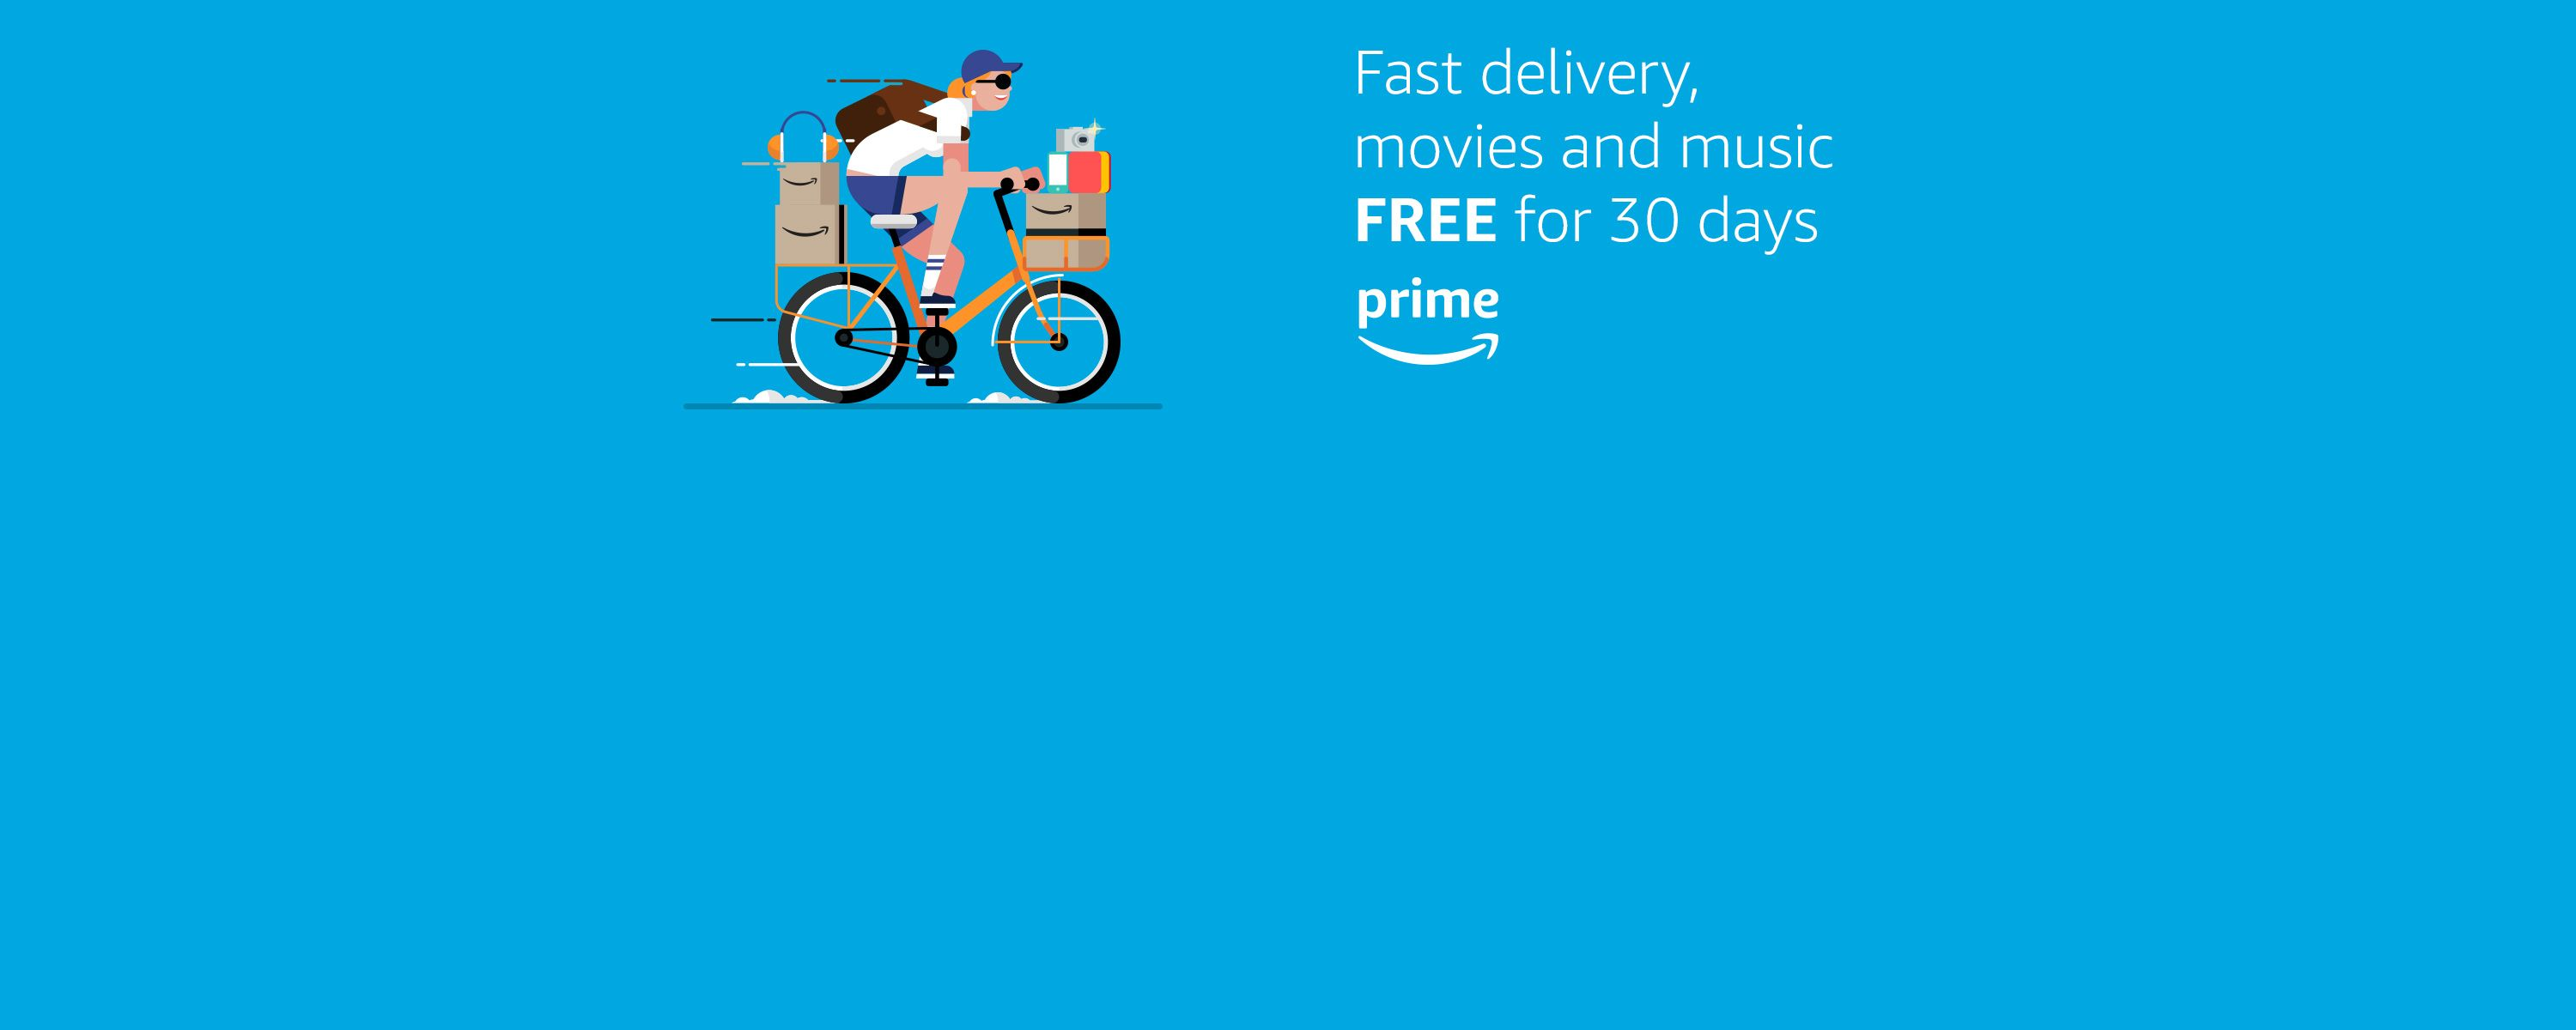 Amazon.co.uk Low Prices in Electronics, Books, Sports